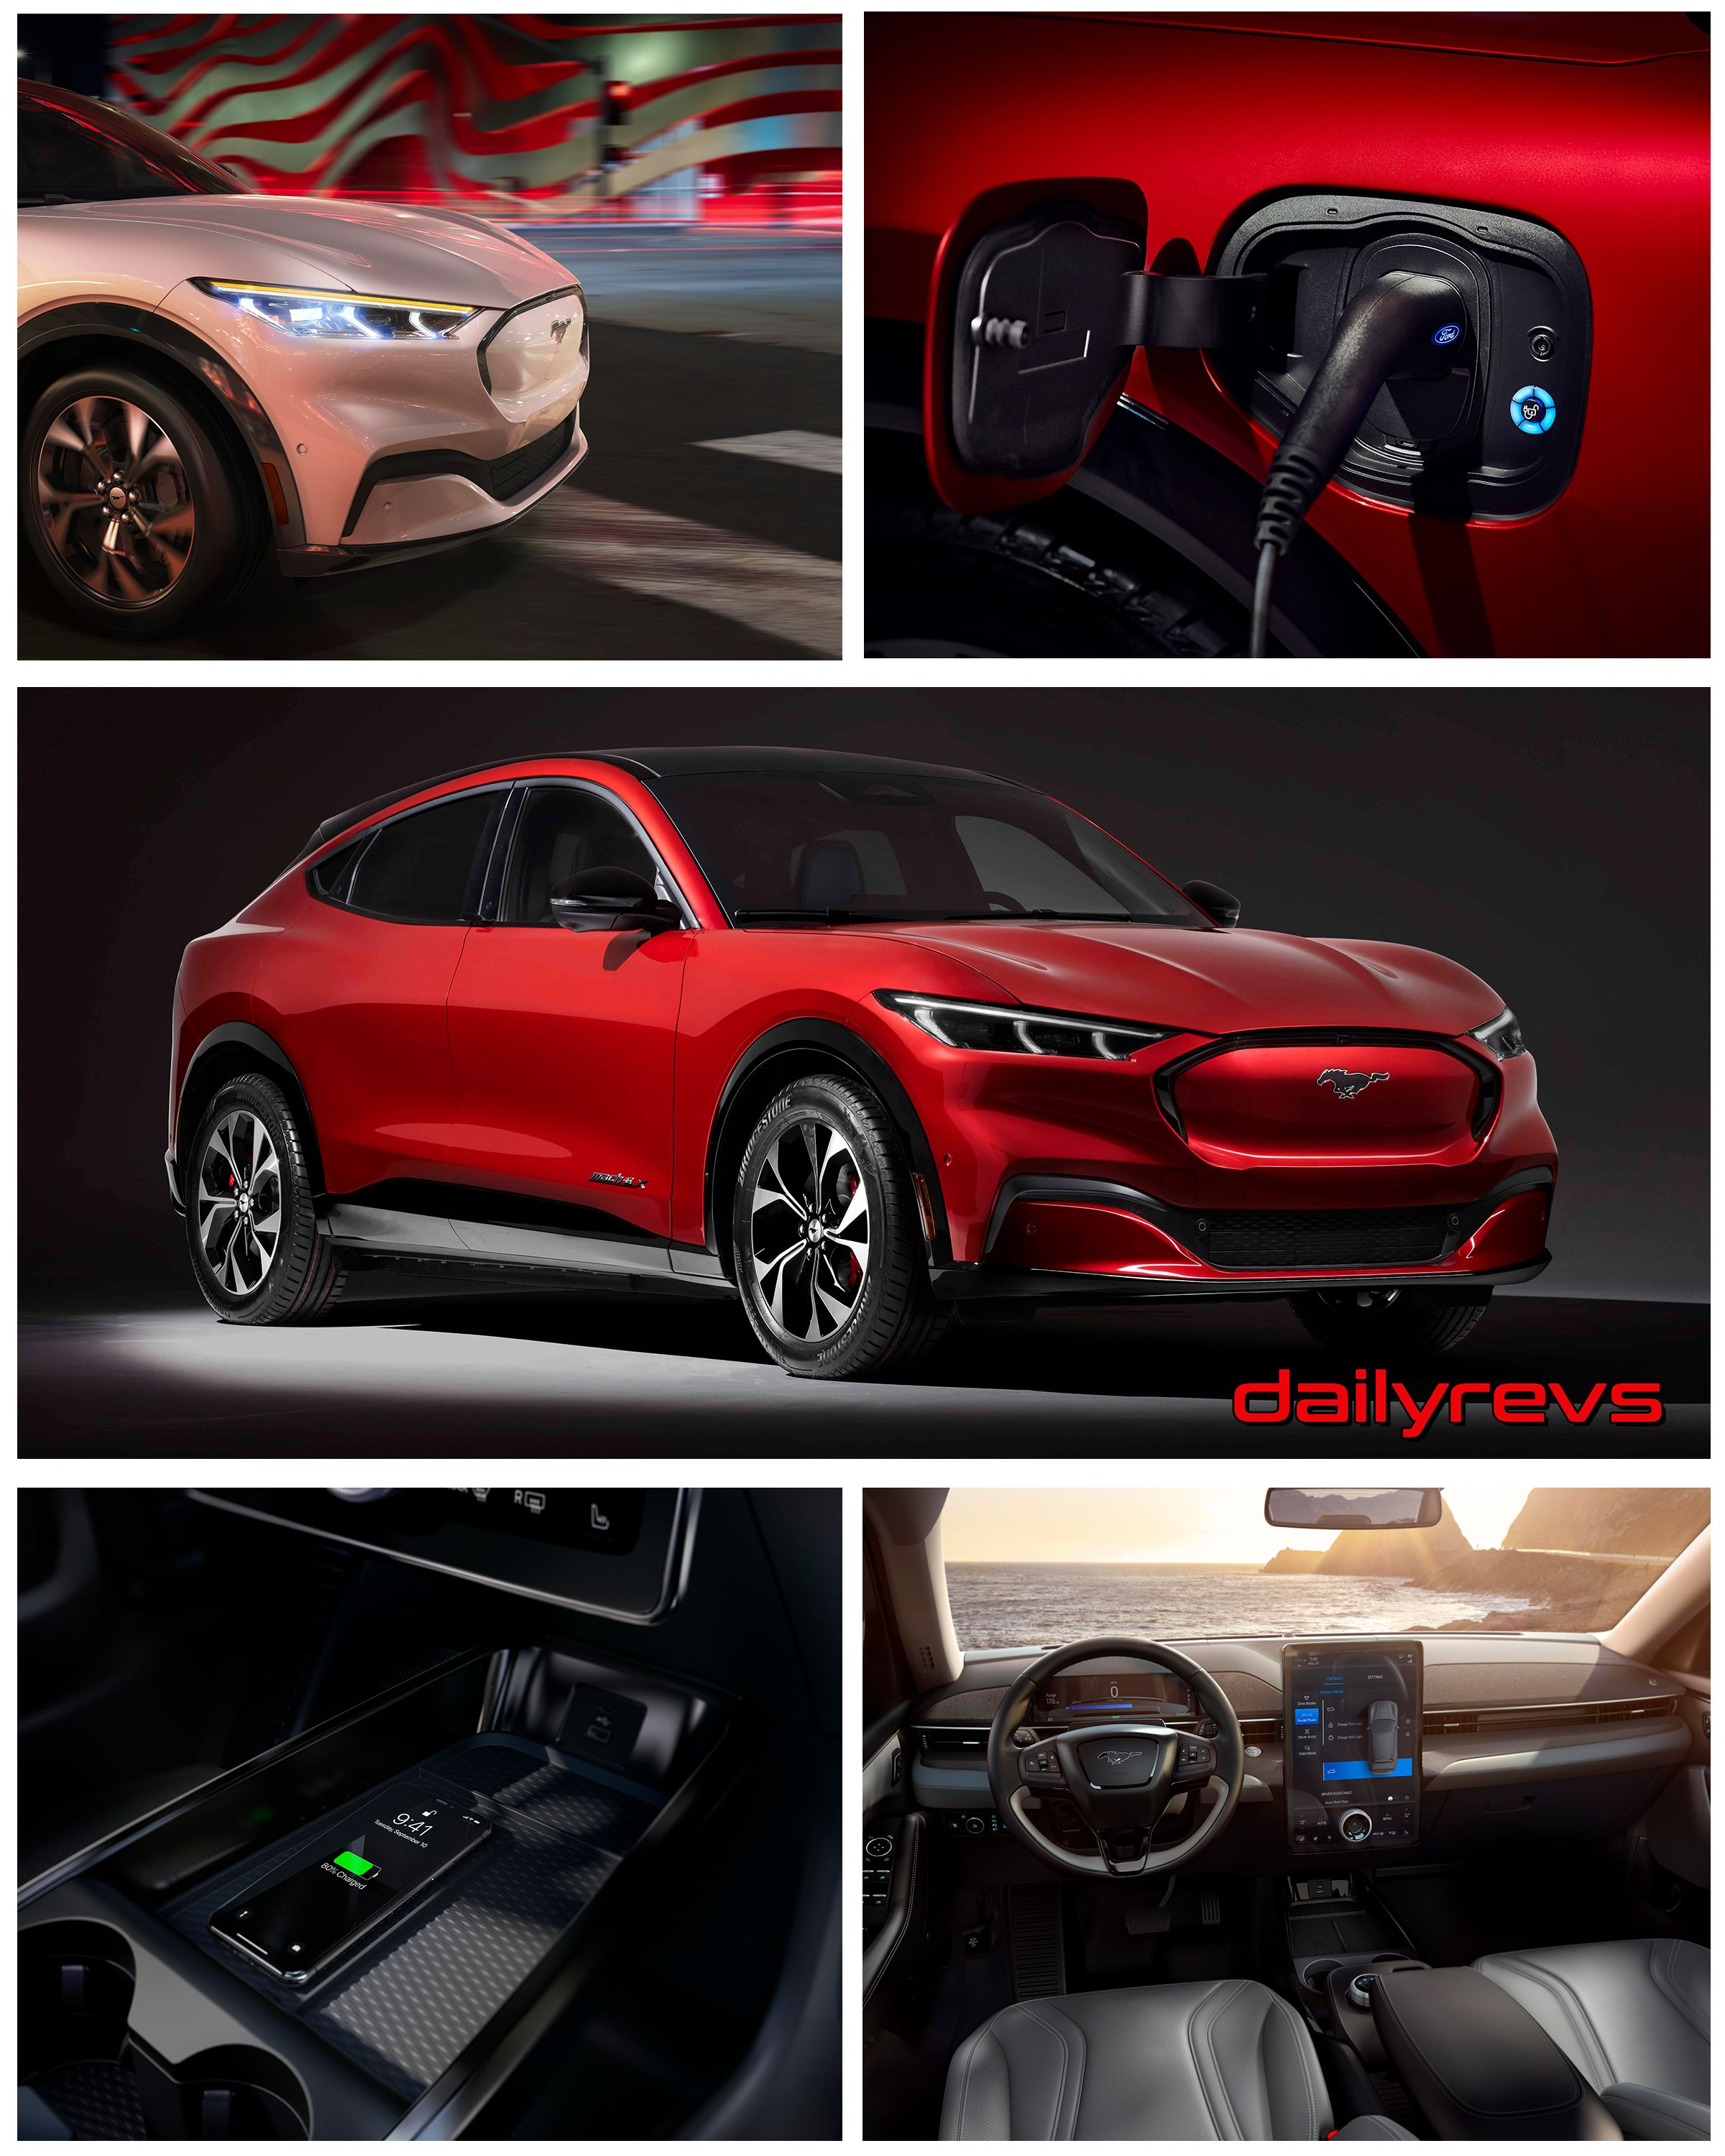 2021 Ford Mustang Mach E Hd Pictures Videos Specs Information With Images Ford Mustang Ford Motor Company Ford Motor